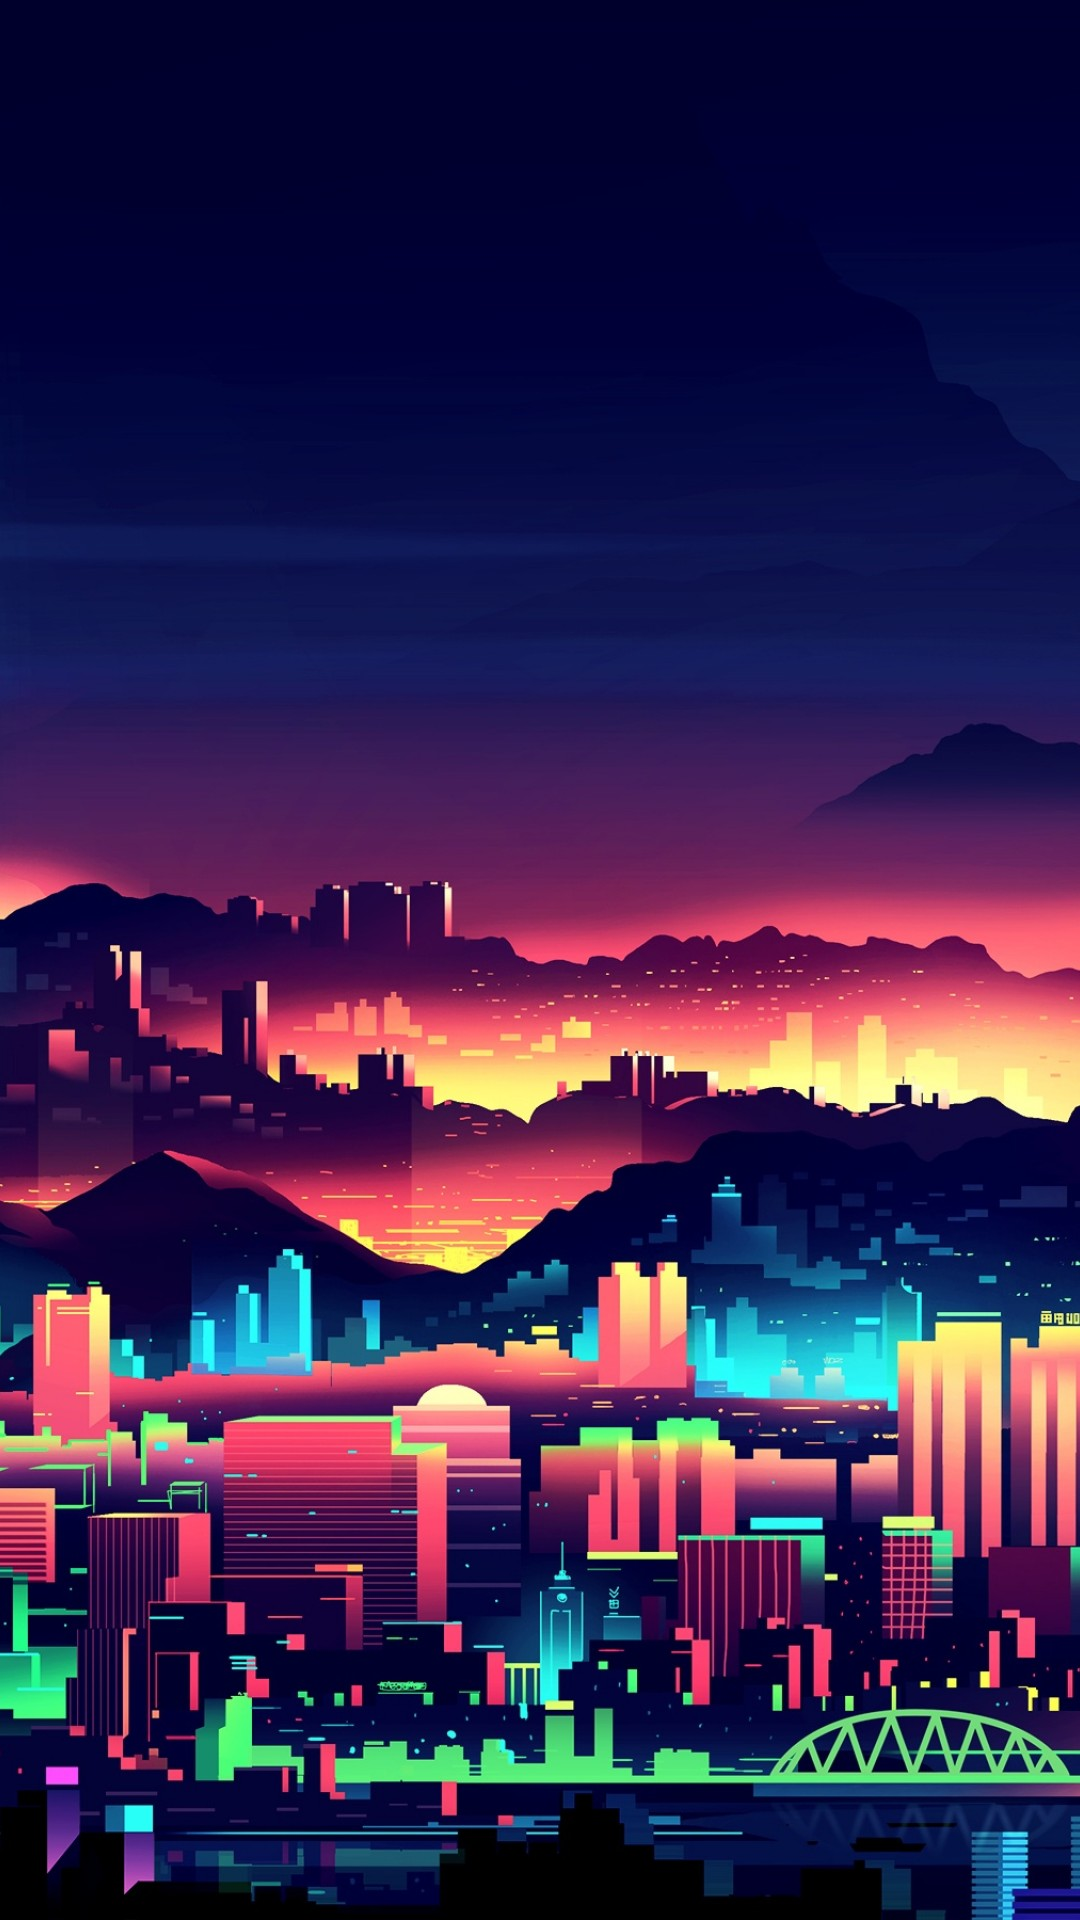 Neon City Wallpaper For Desktop And Mobiles Iphone 6 6s Plus Hd